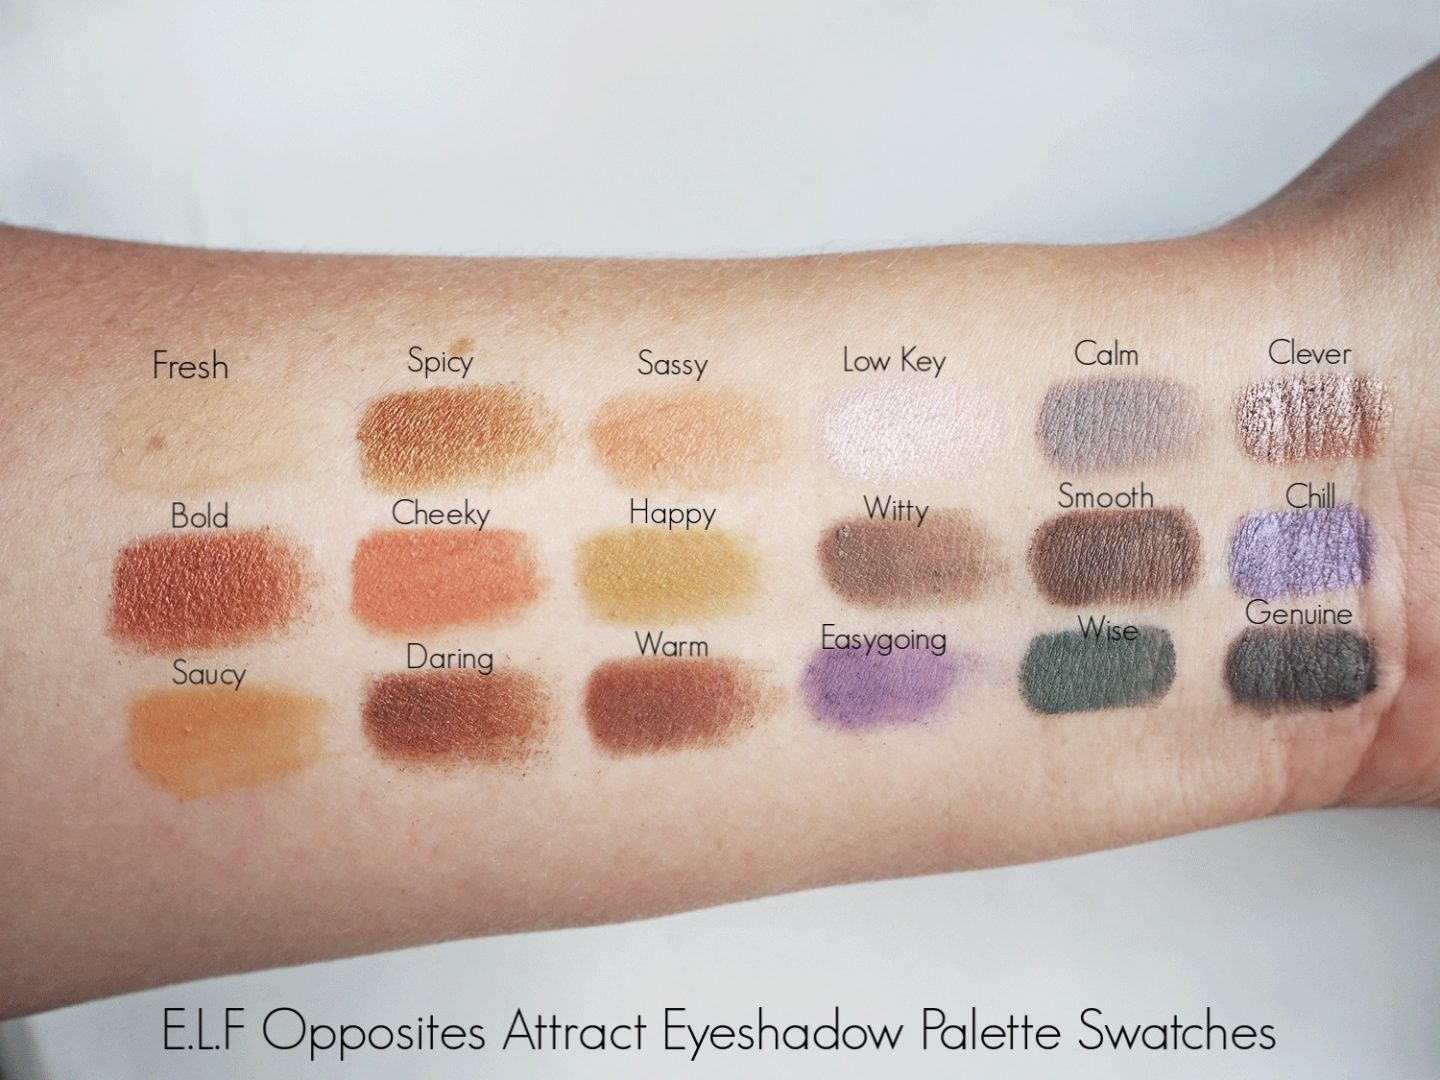 ELF opposites attract eyeshadow palette swatches